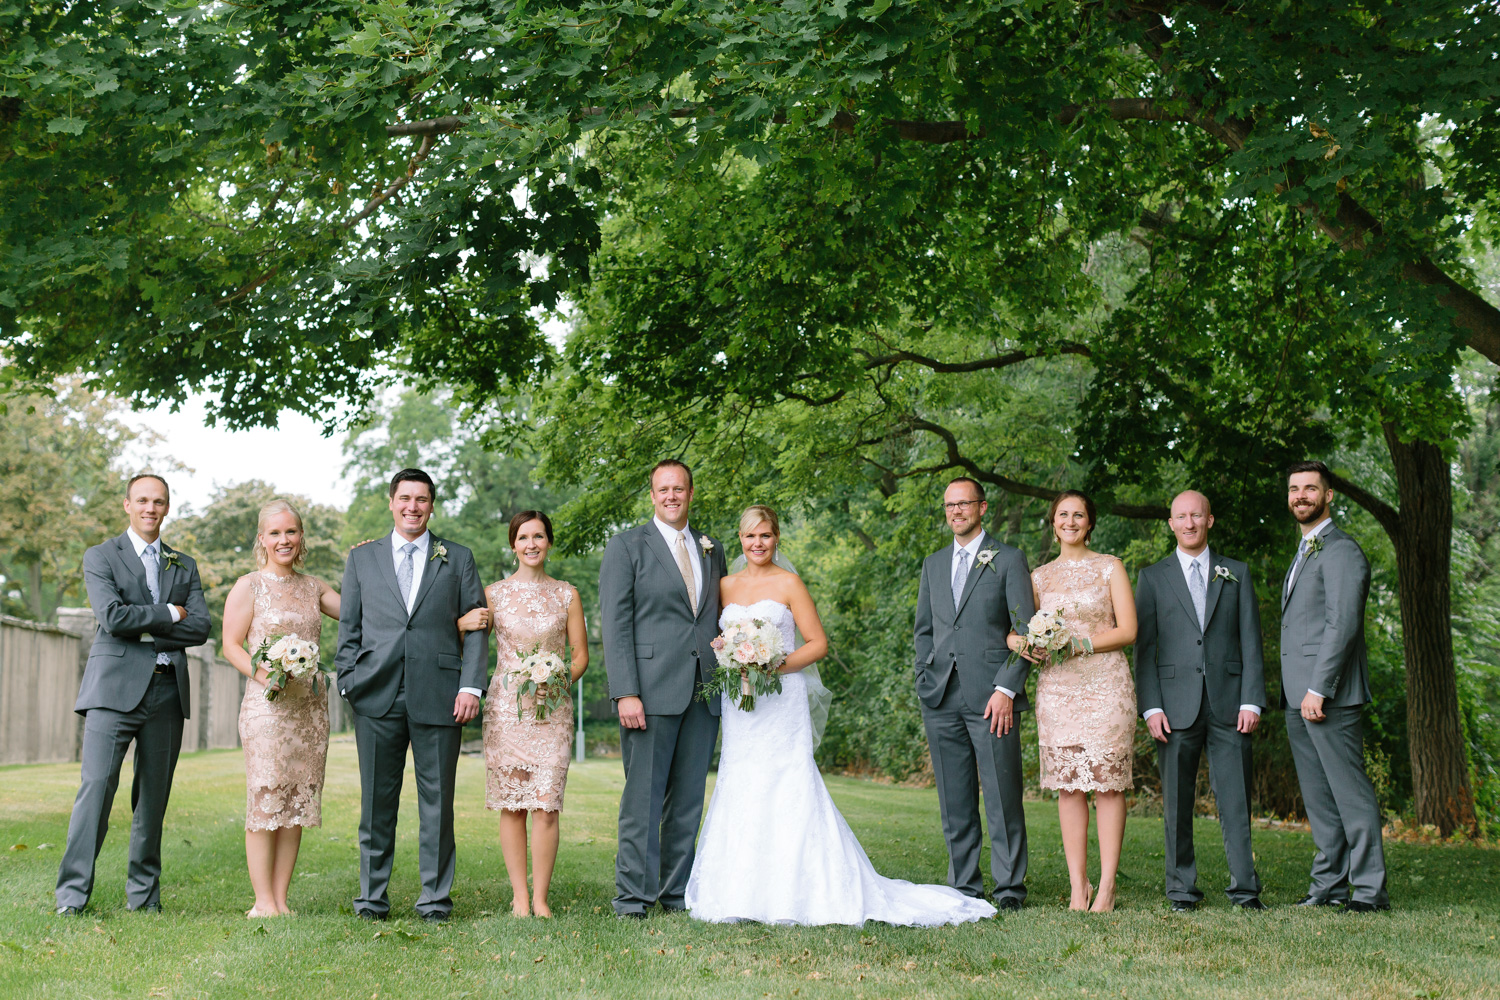 BridalPulse - Golf Lovers' Country Club Wedding - bride groom and bridal party